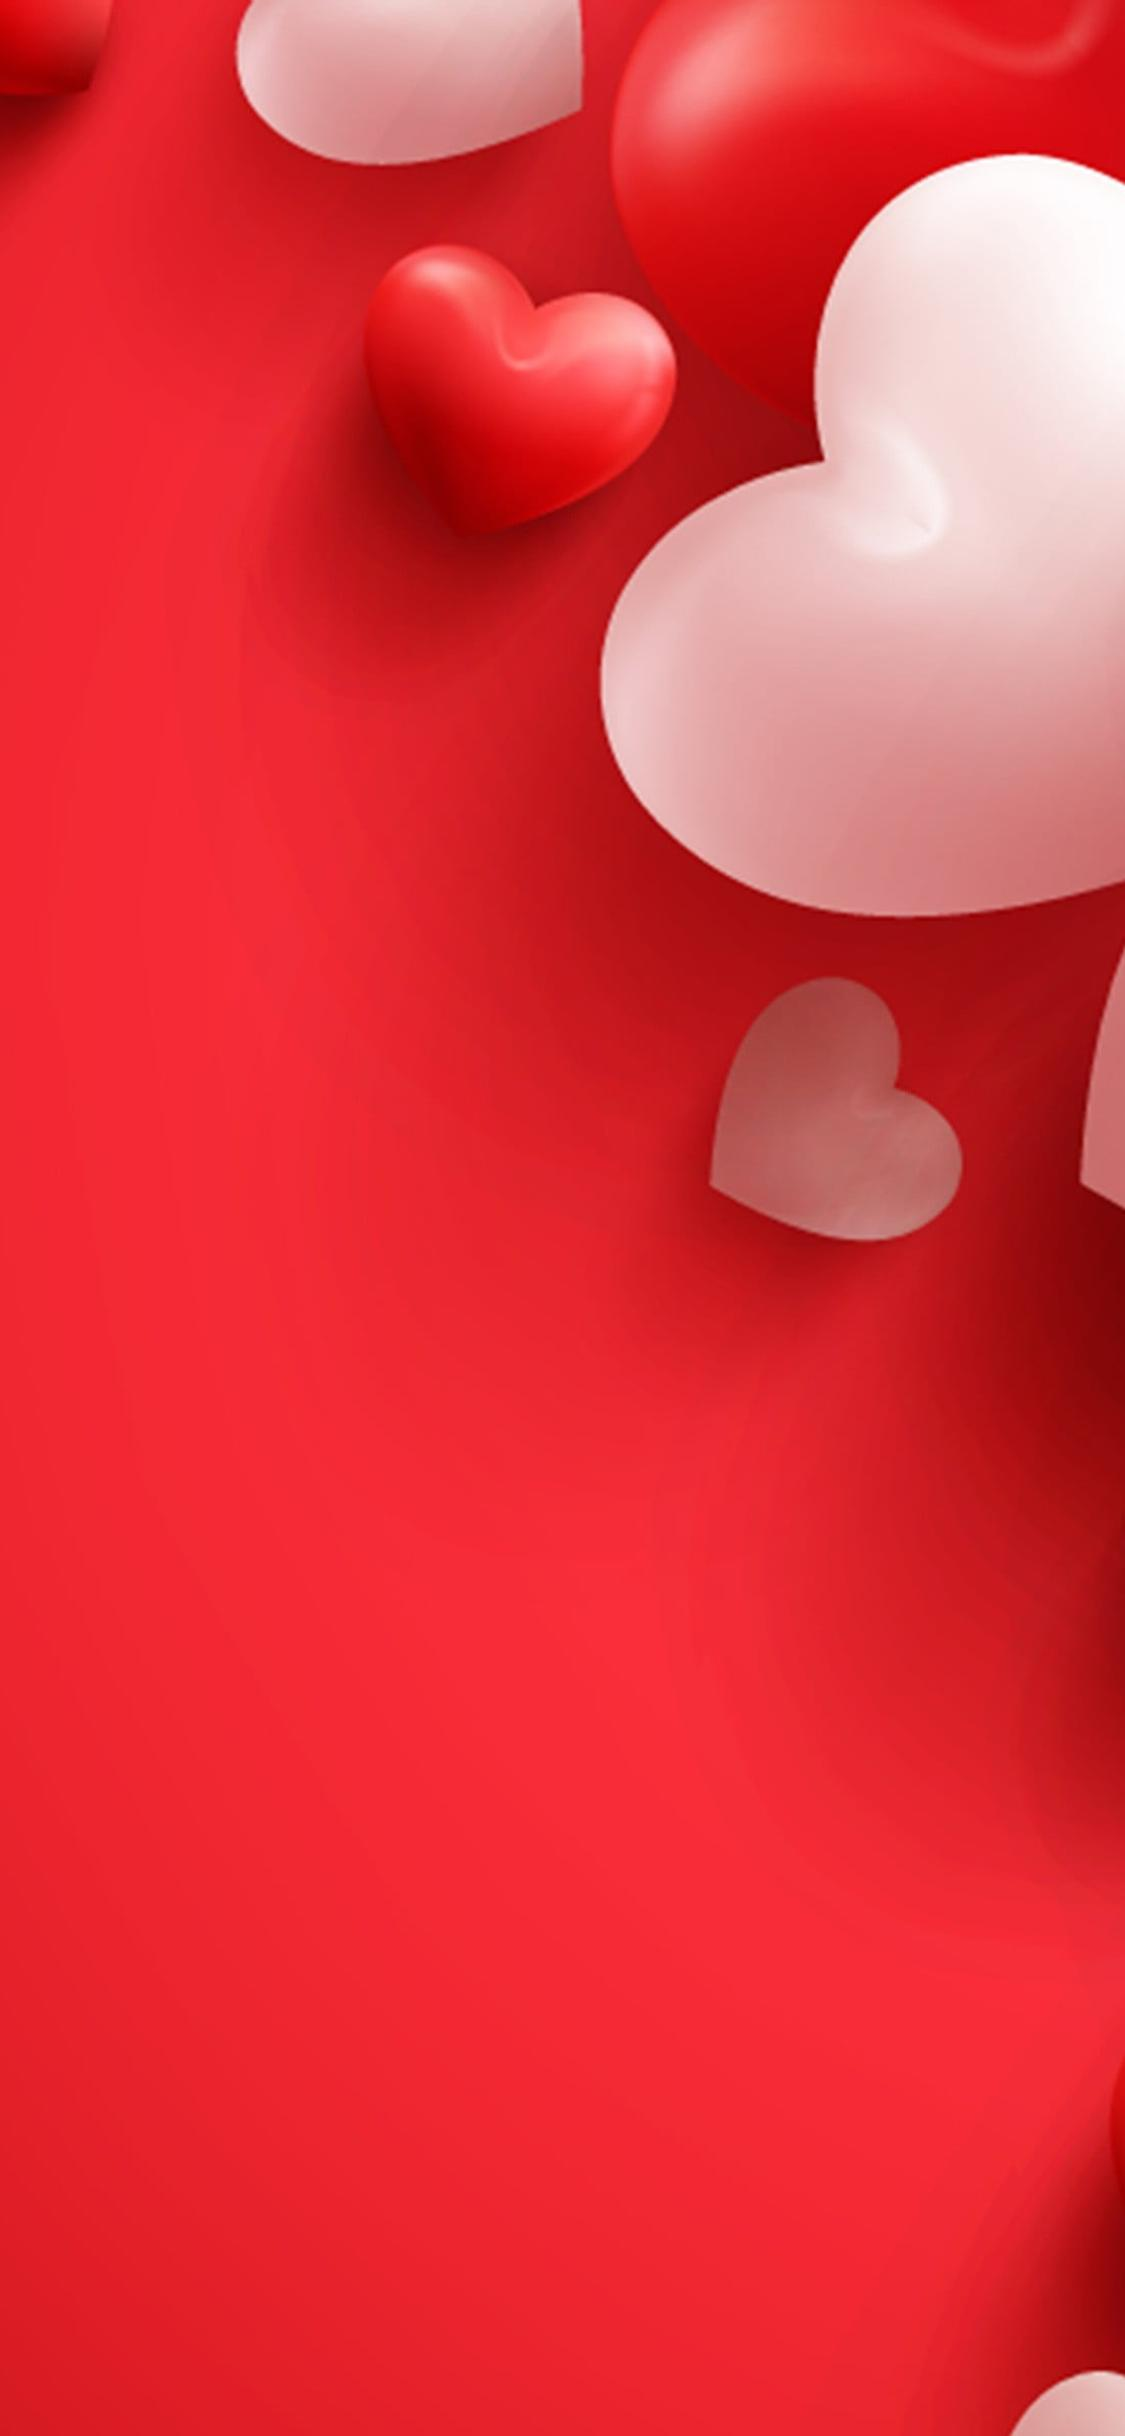 Love Wallpaper With Red And White Hearts Valentines Day